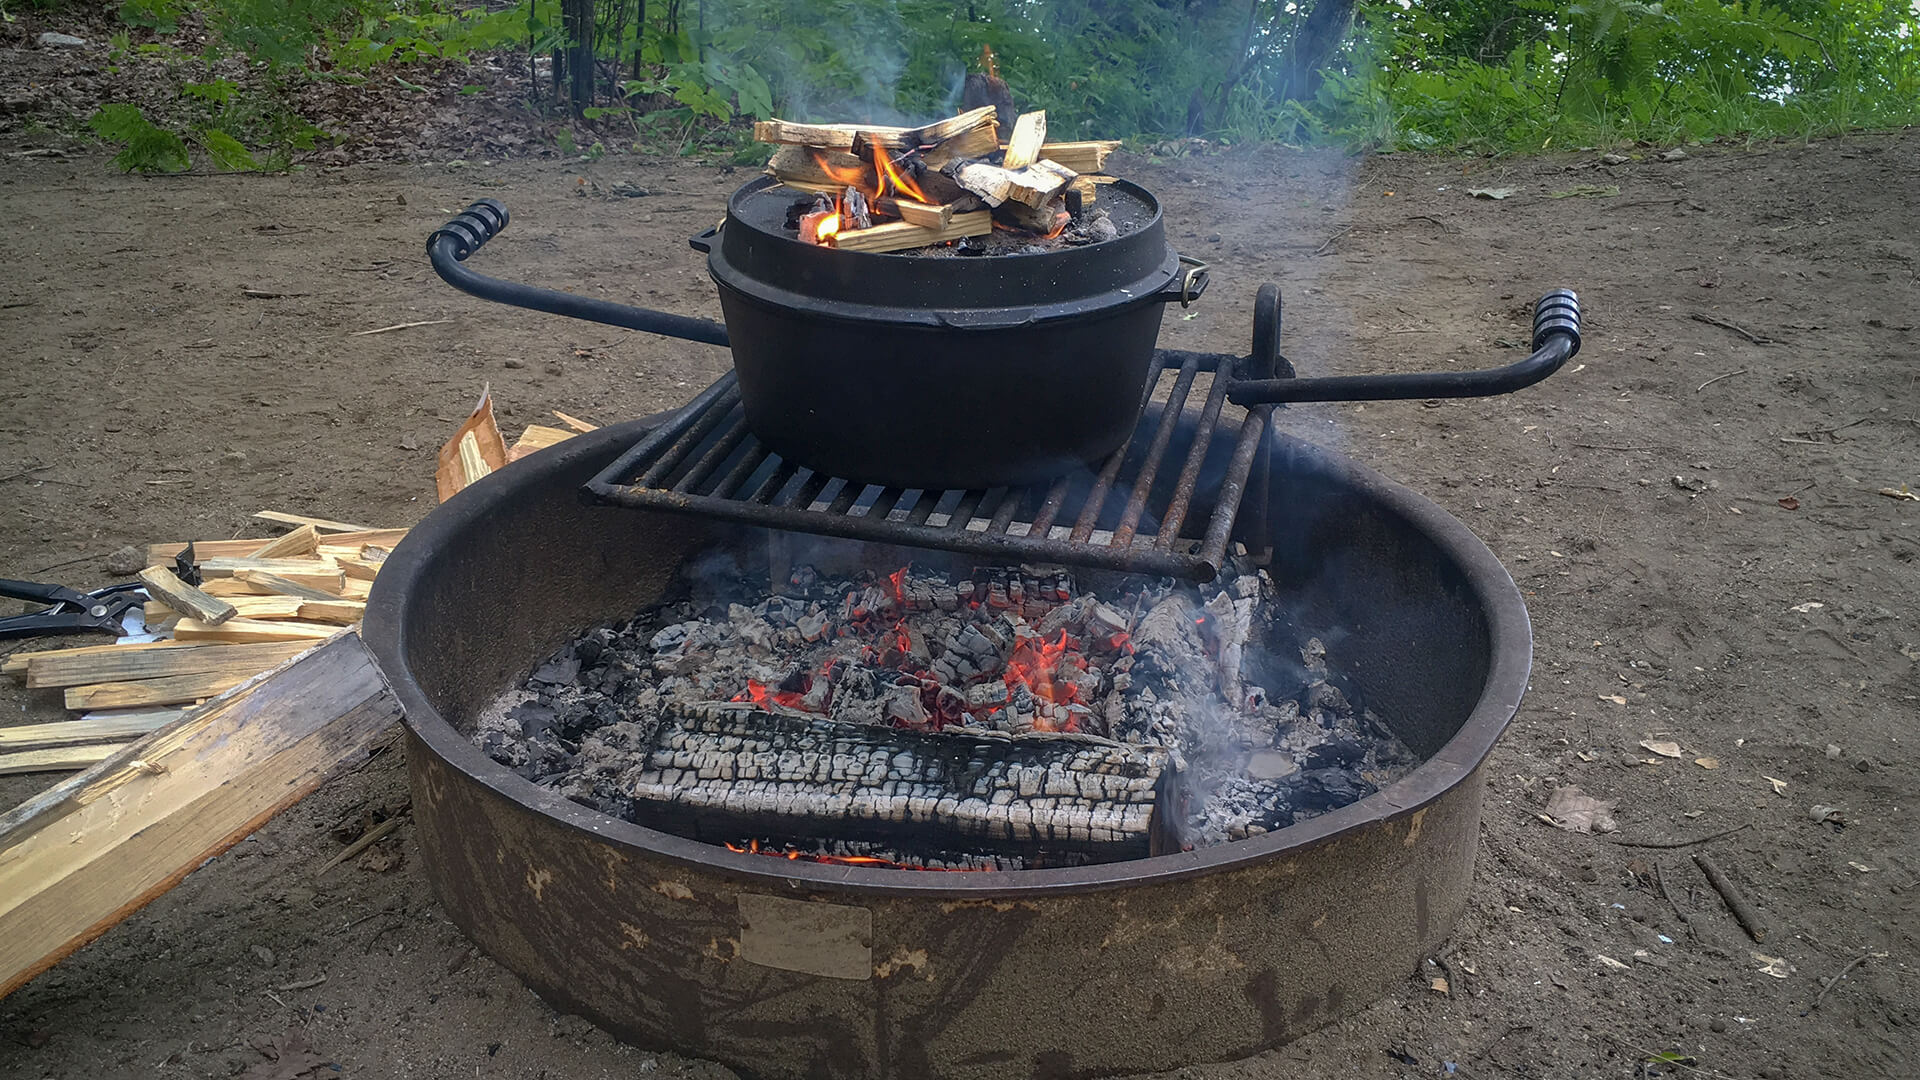 Dutch Oven Camping Recipes for Perfect Campfire Meals